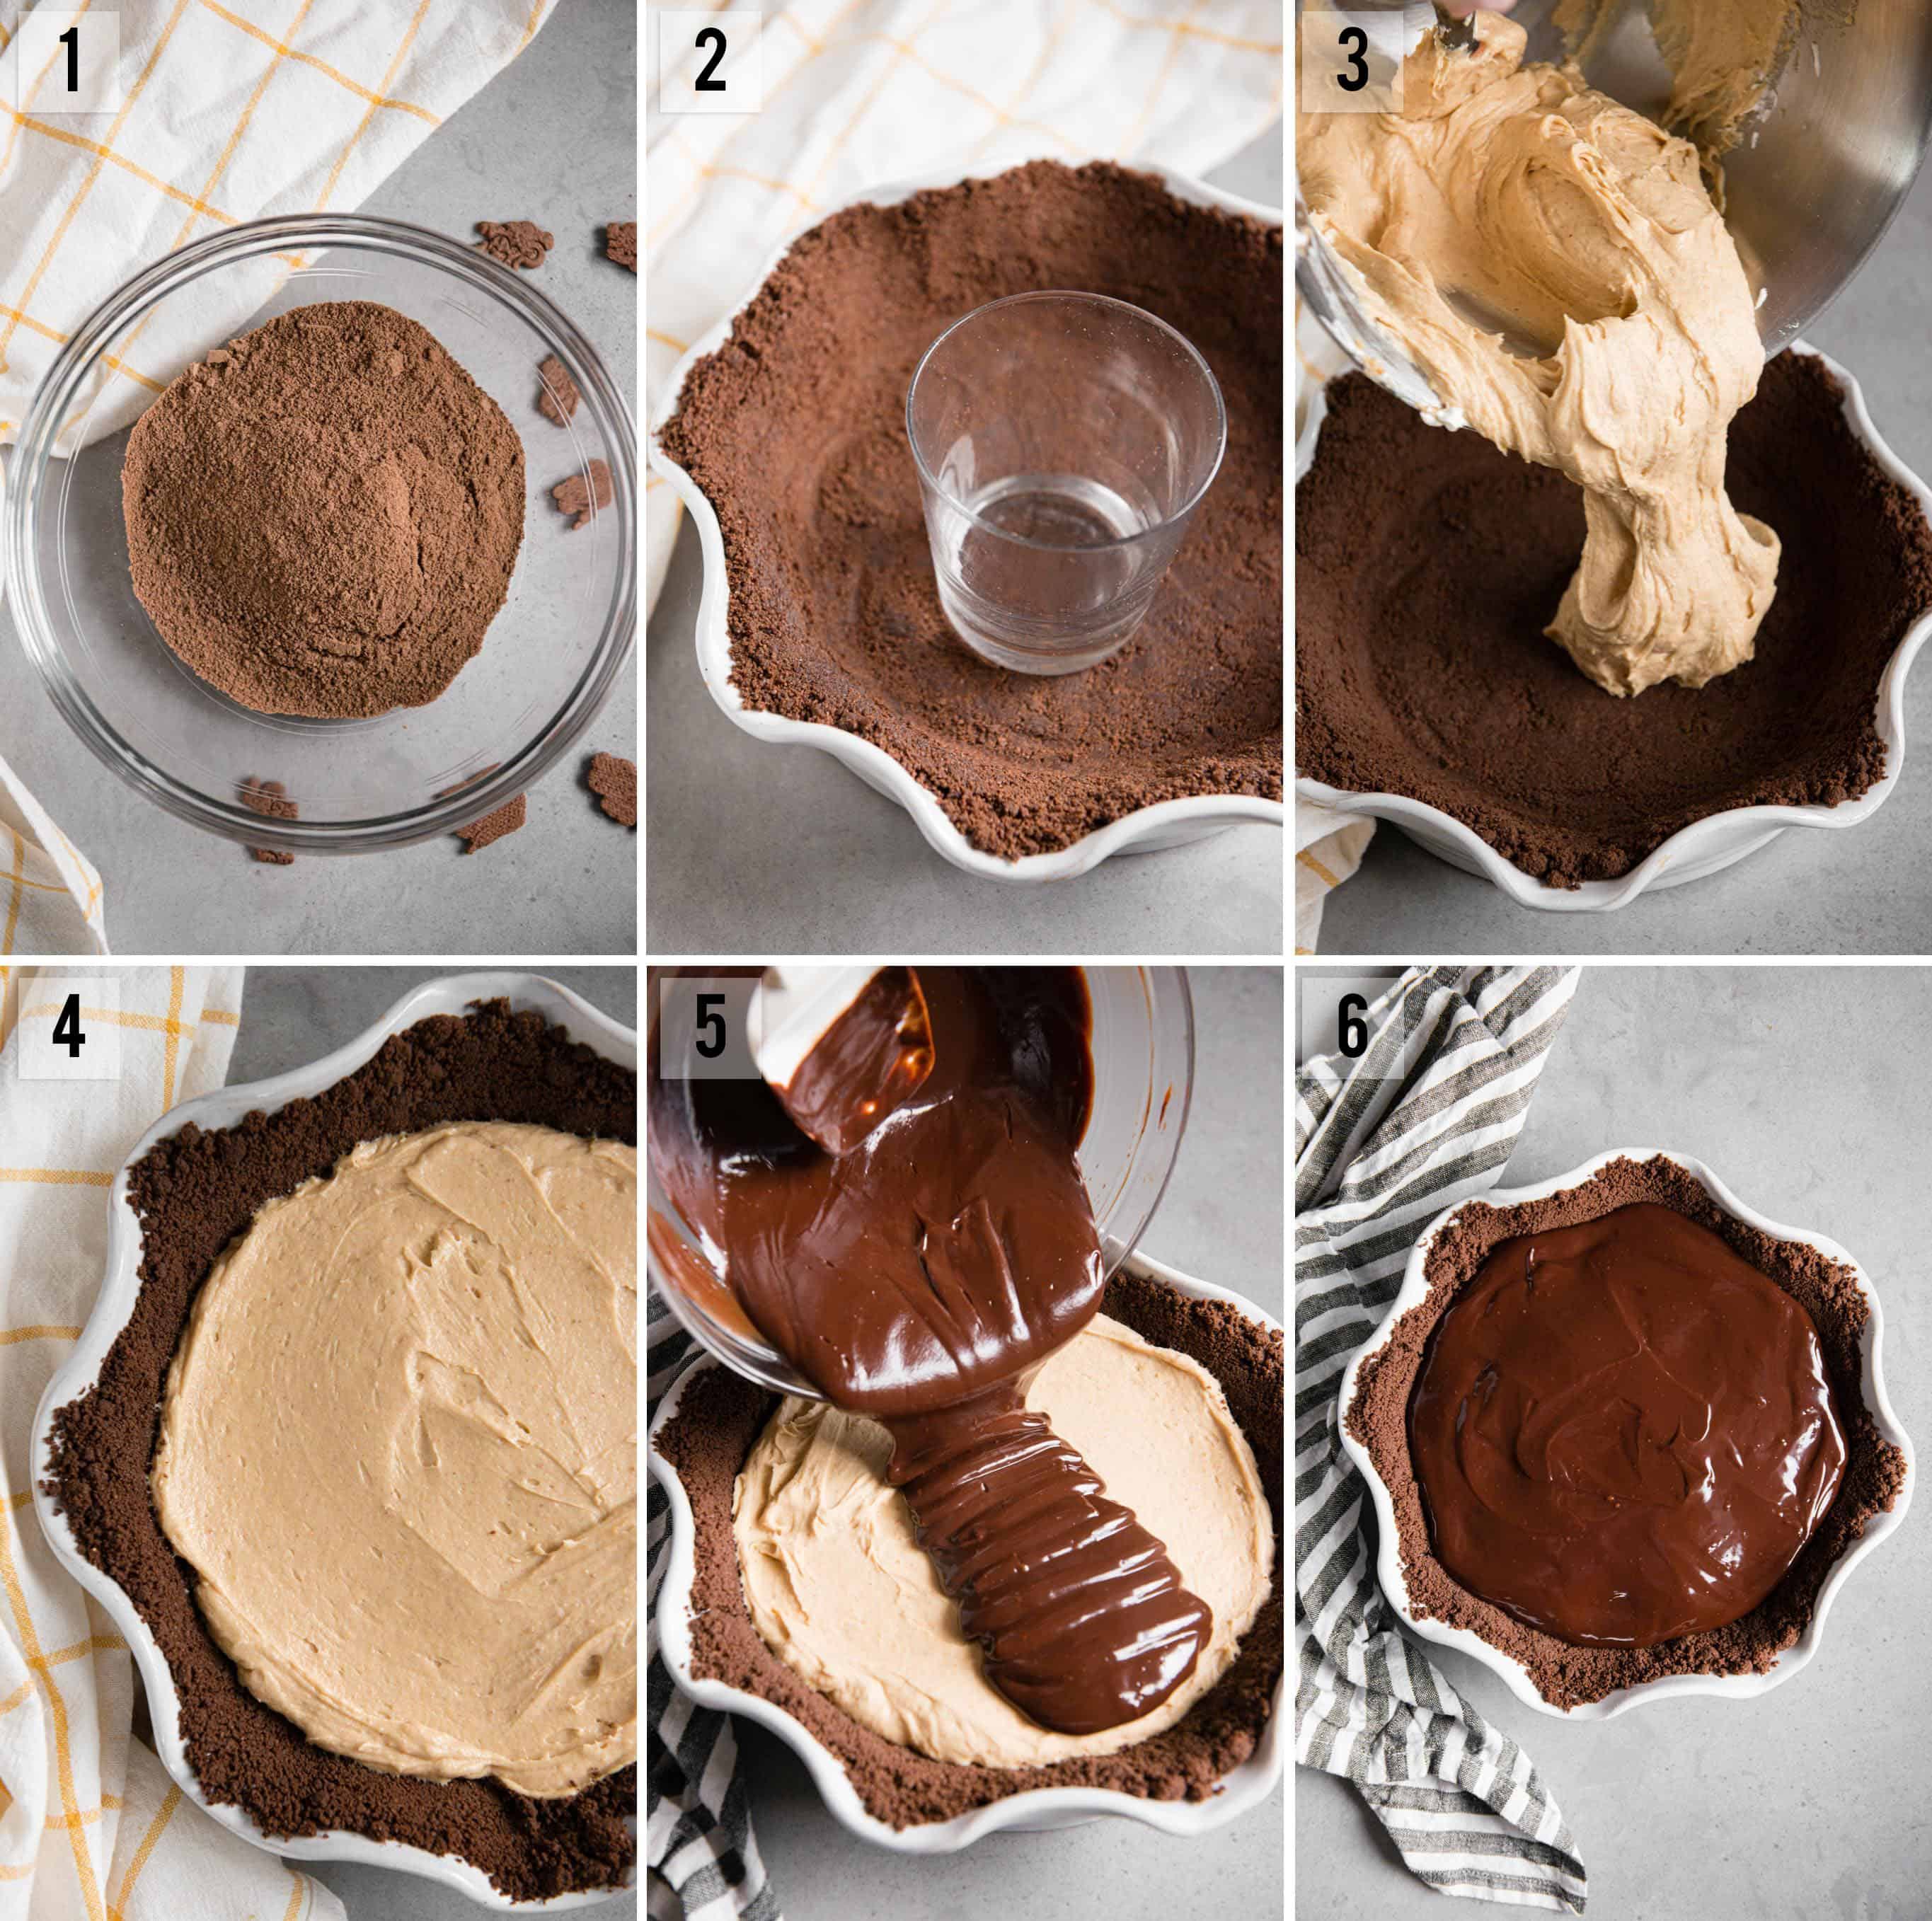 step by step photos of how to make a homemade chocolate peanut butter pie